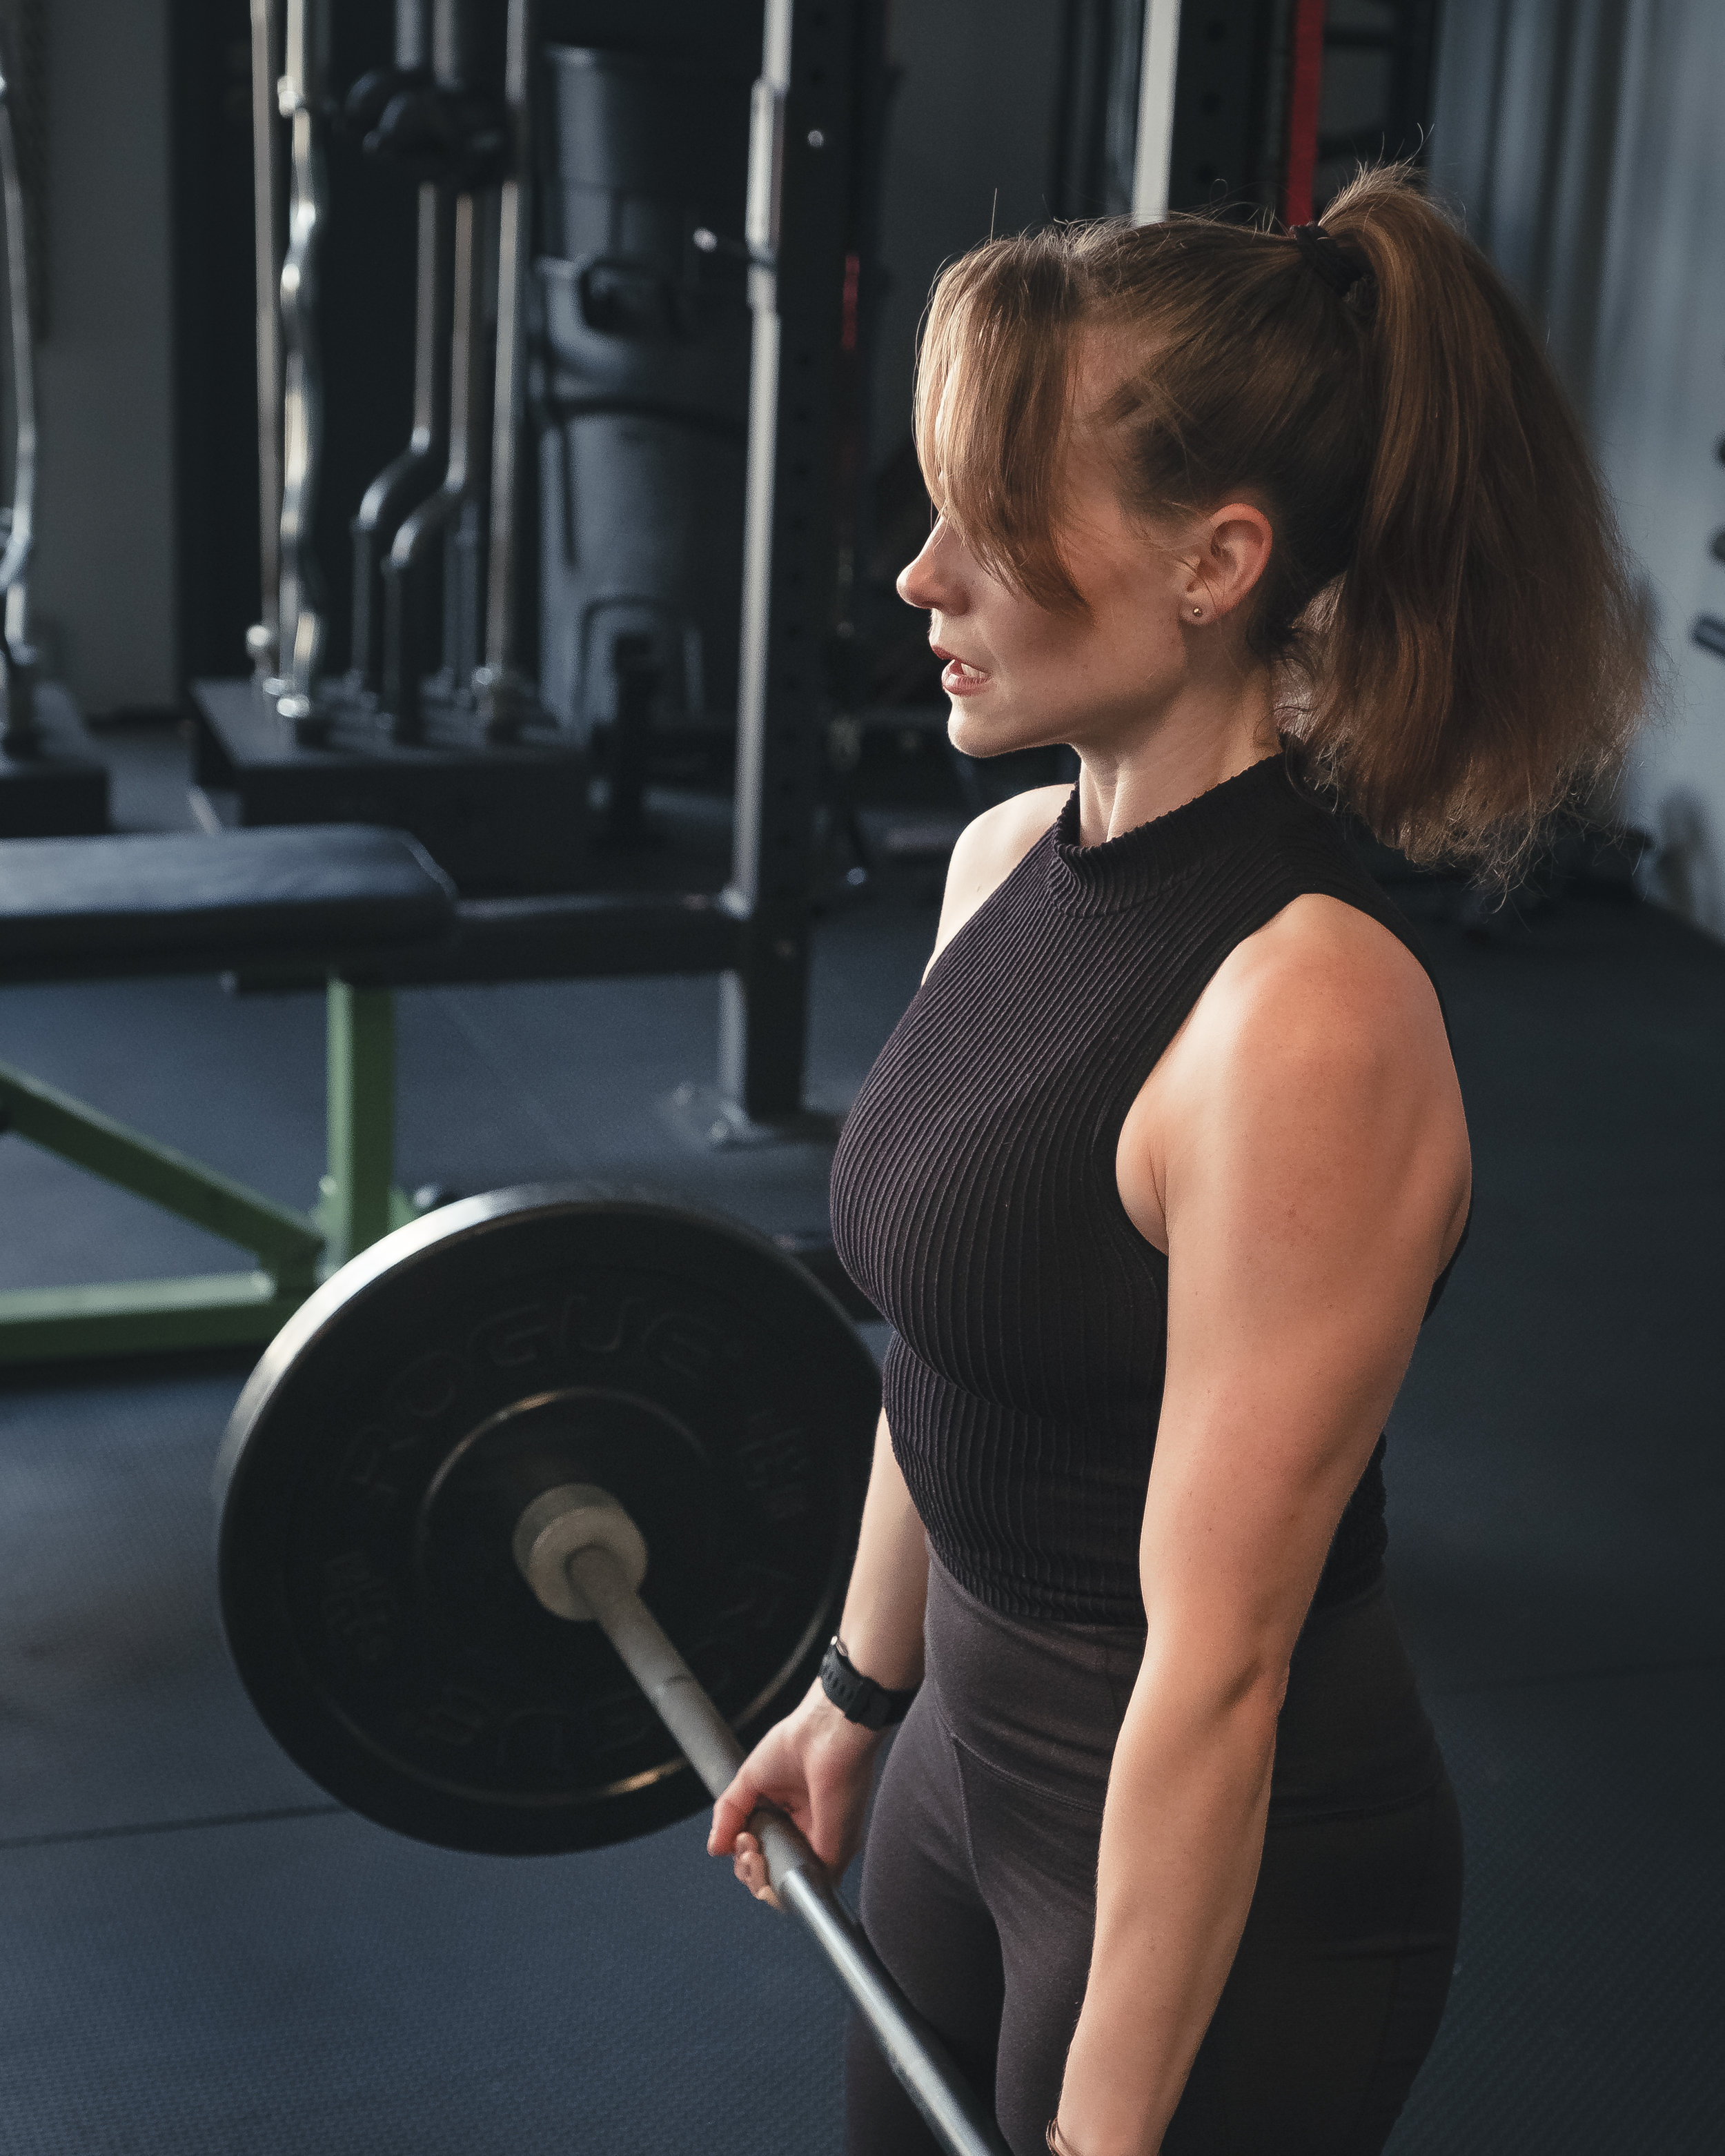 Women's Program II - This program is 6 week advanced gym based strength training program for women looking to increase strength, build muscle and lose fat. It includes 2 days per week of yoga and cardio of choice and 3 days per week of gym workouts. Must have at least 1 year of gym experience to participate!5 assigned workouts per week for 6 weeksPersonalized macrosAccess to nutrition trackingMeasurement trackerWorkout trackerVideo demos of each exerciseAccess to Facebook groupDoes not expire!